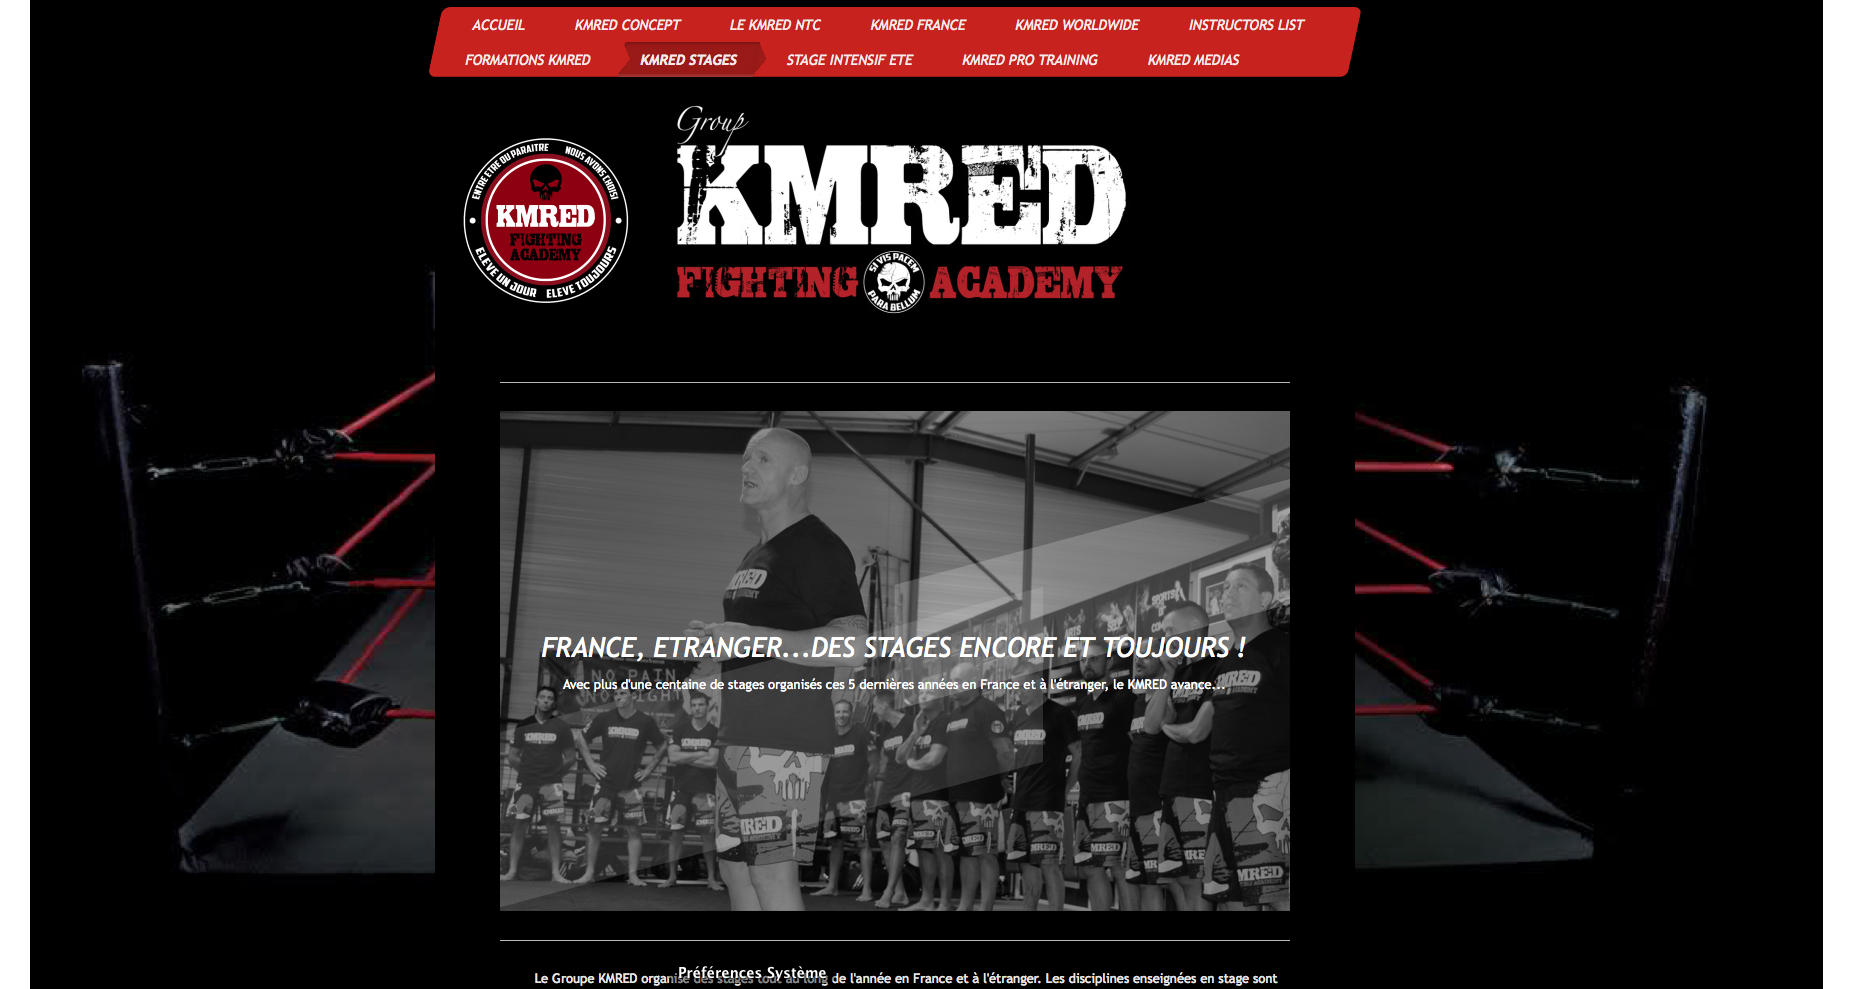 KMRED Image 11